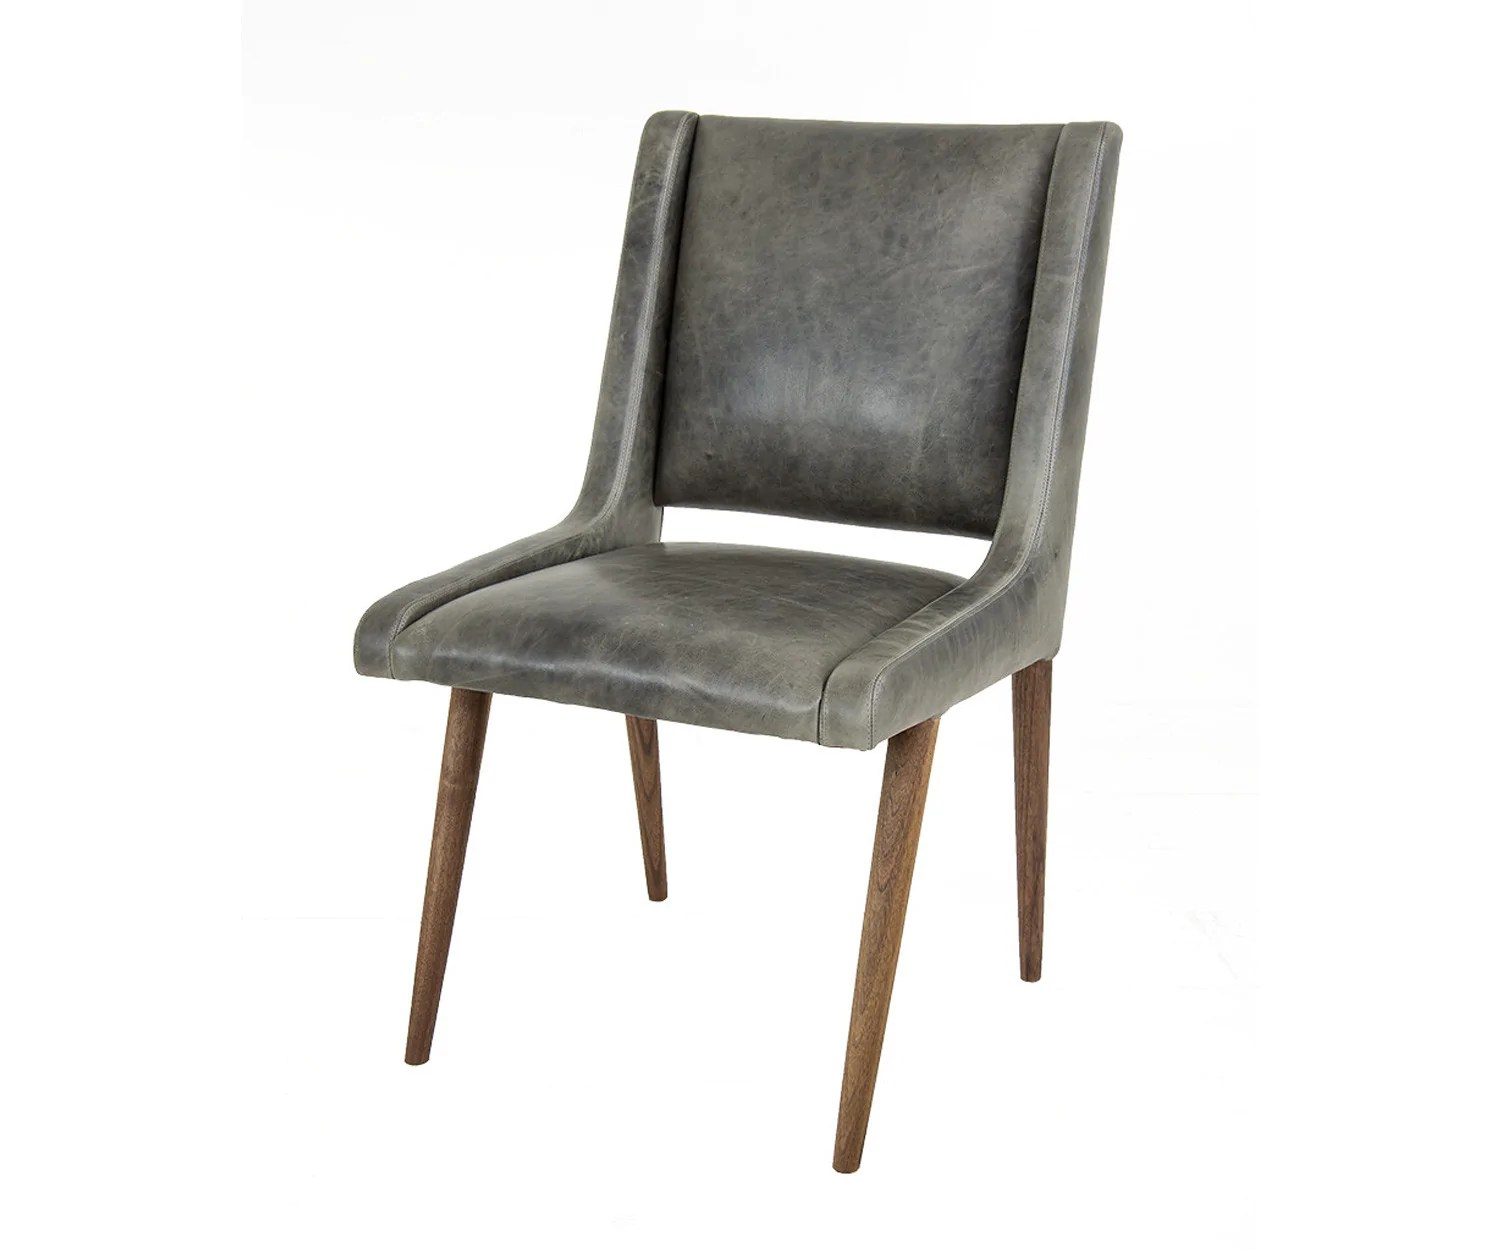 Mid Century Dining Chair In Distressed Grey Leather